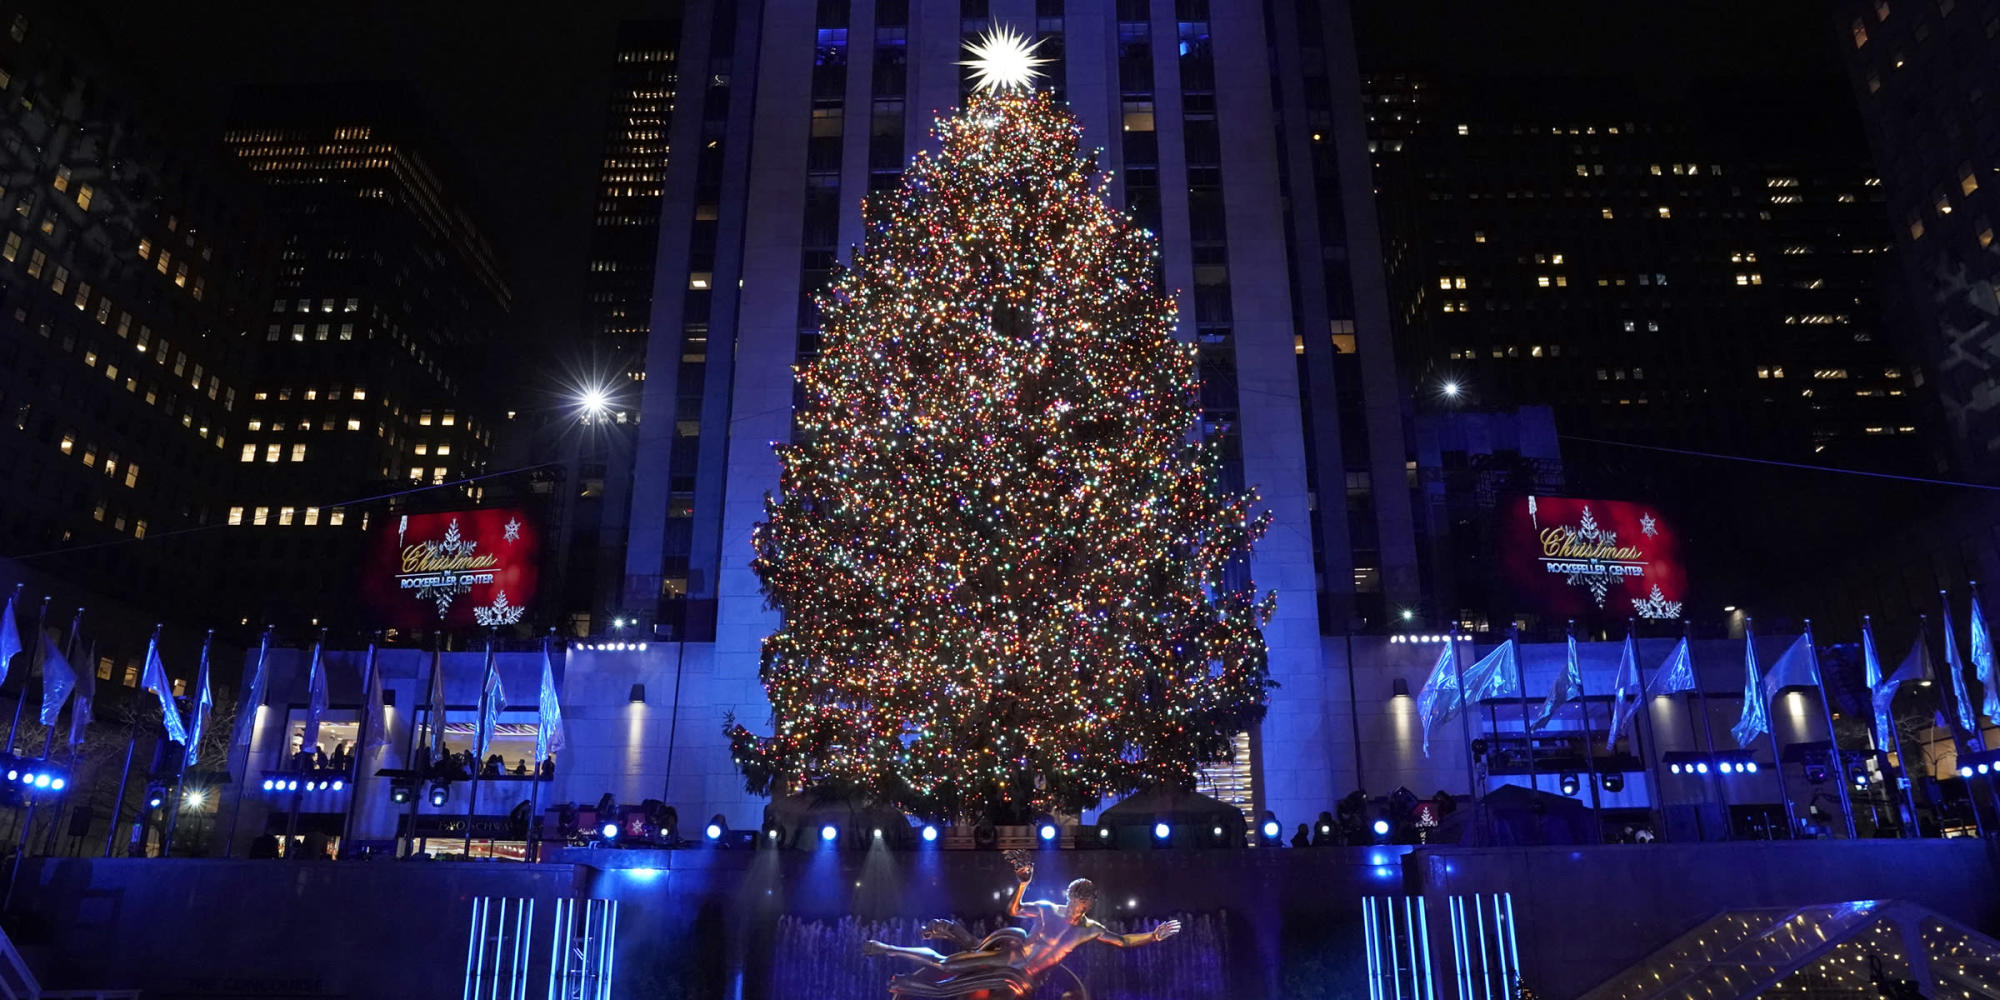 the 2020 rockefeller center christmas tree has been chosen here are the details https news yahoo com 2020 rockefeller center christmas tree 141700755 html